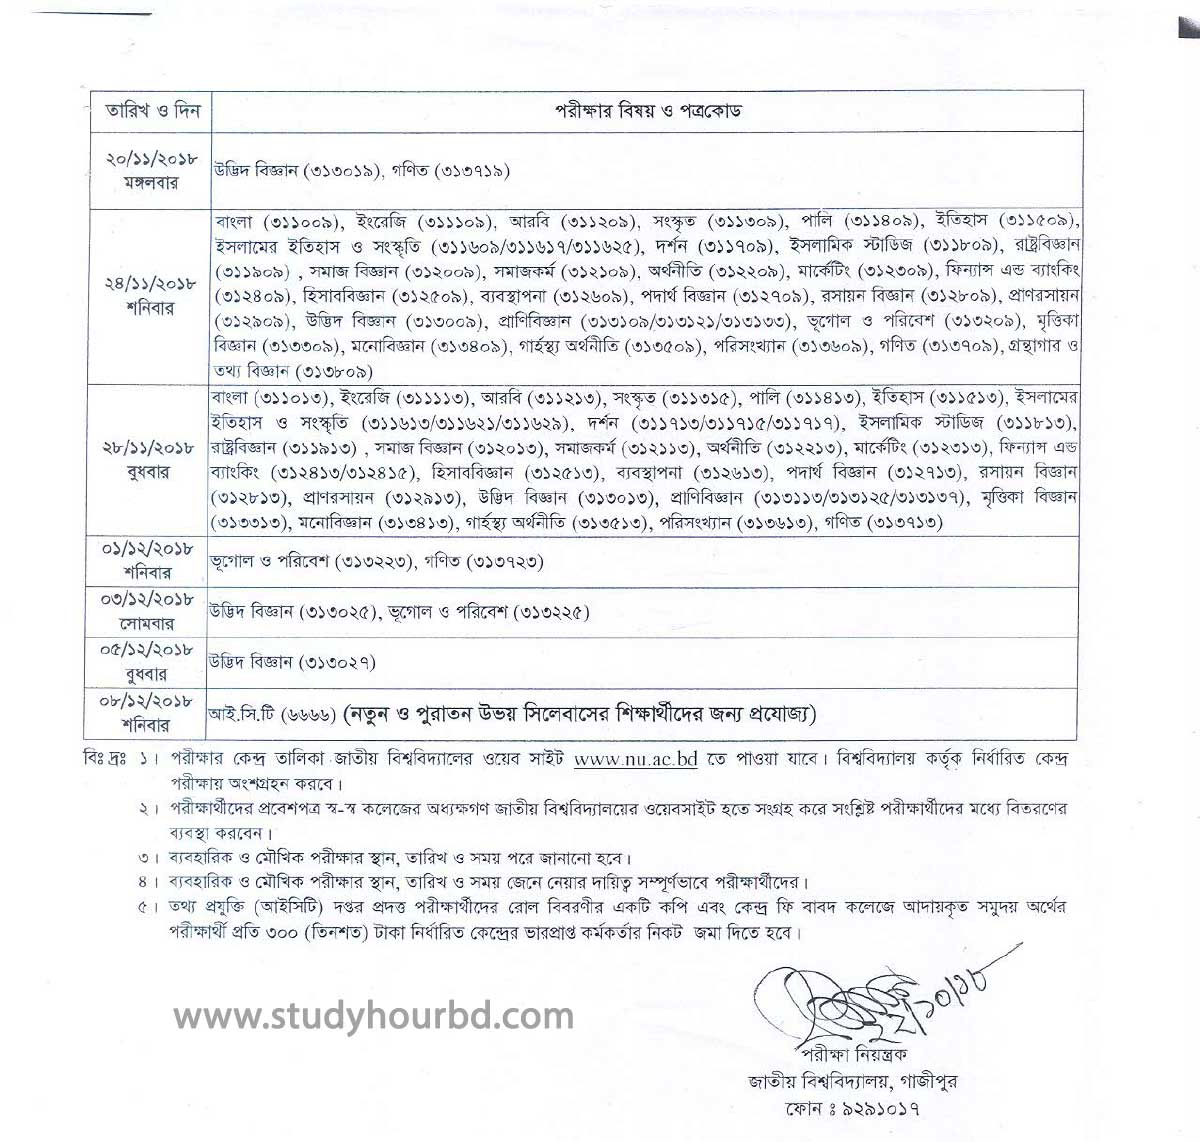 NU Masters Final Year Exam Routine 2018 part2